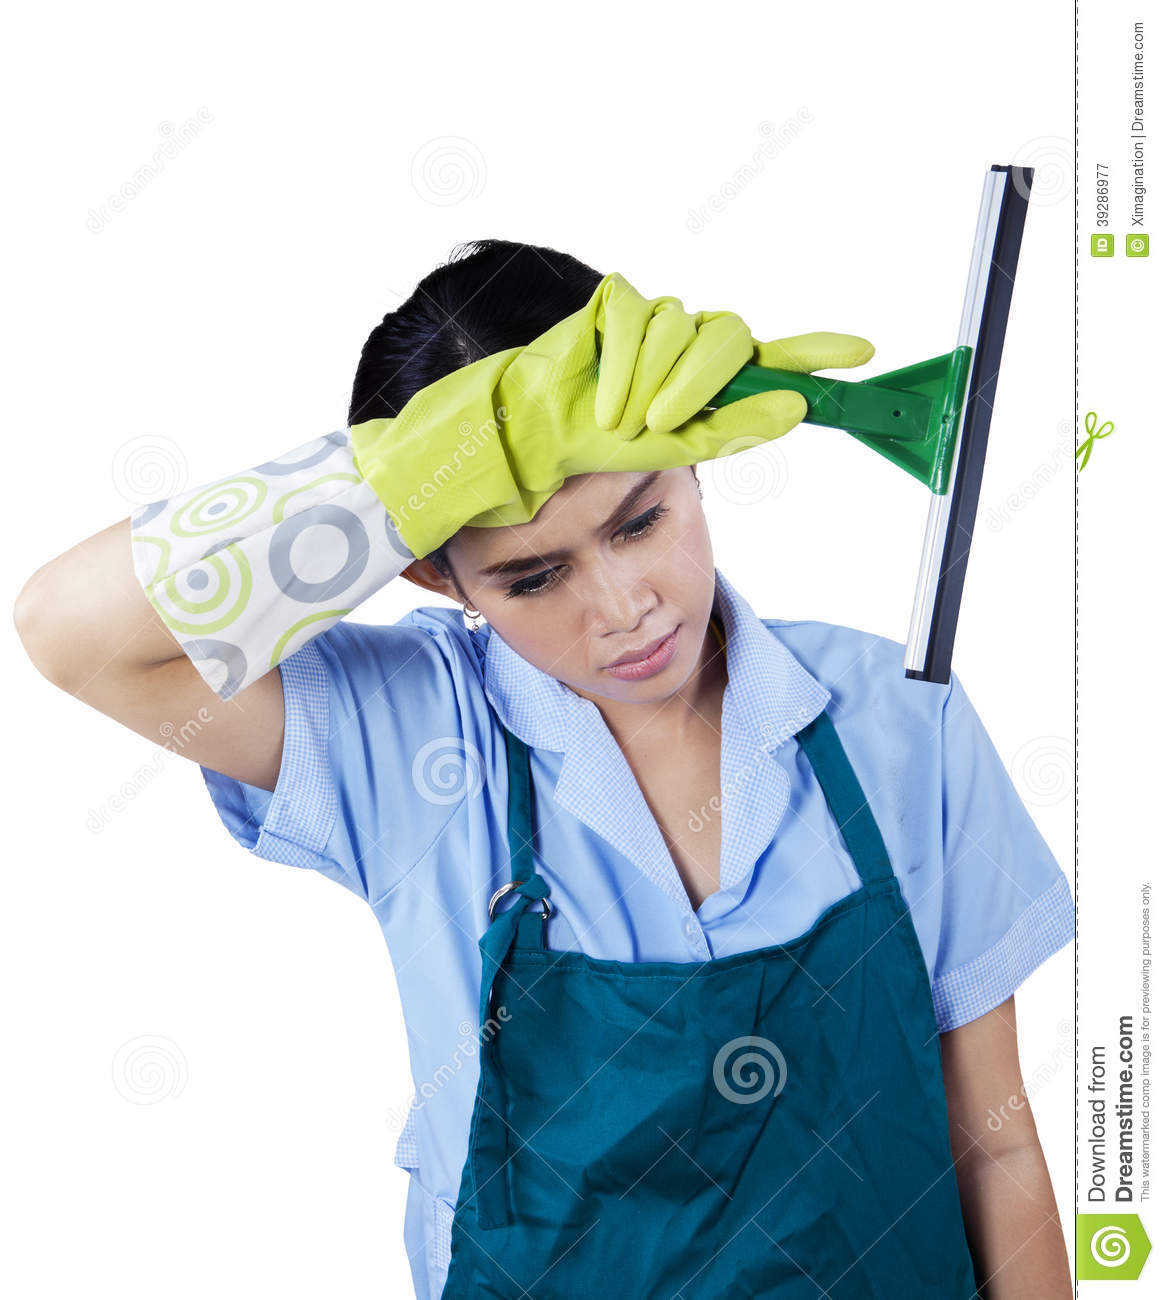 tired maid holding cleaning tool stock photo